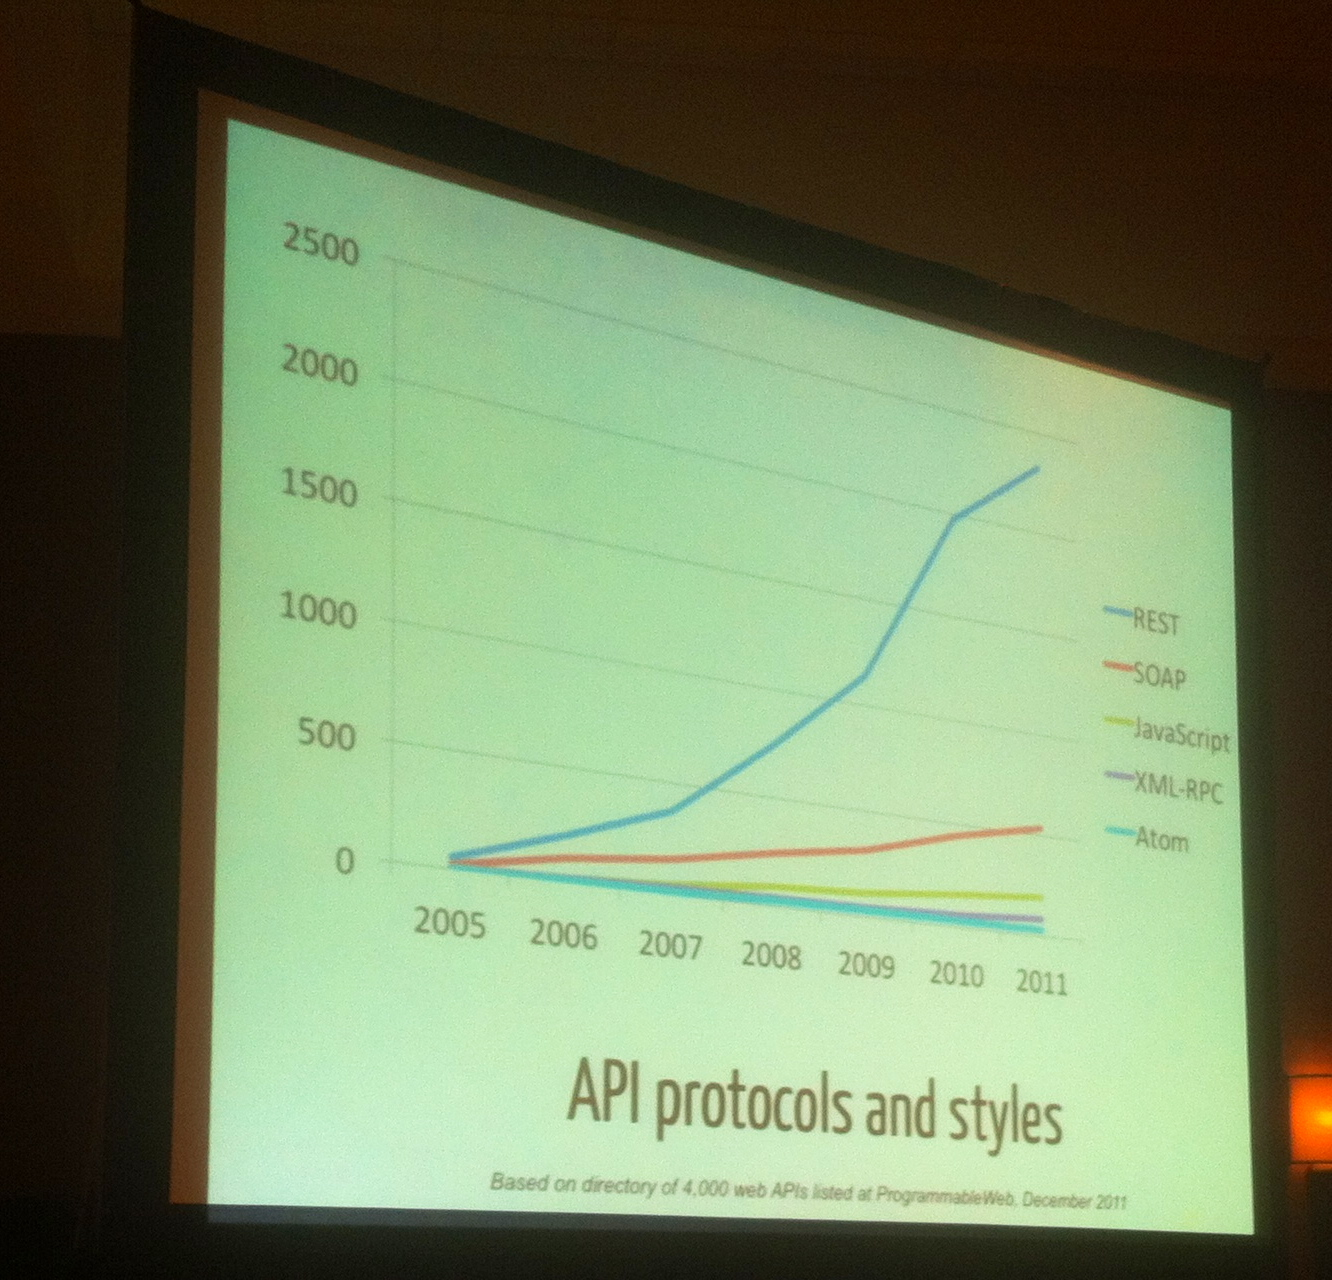 Hot API Protocols and Styles from John Musser of Programmableweb.com